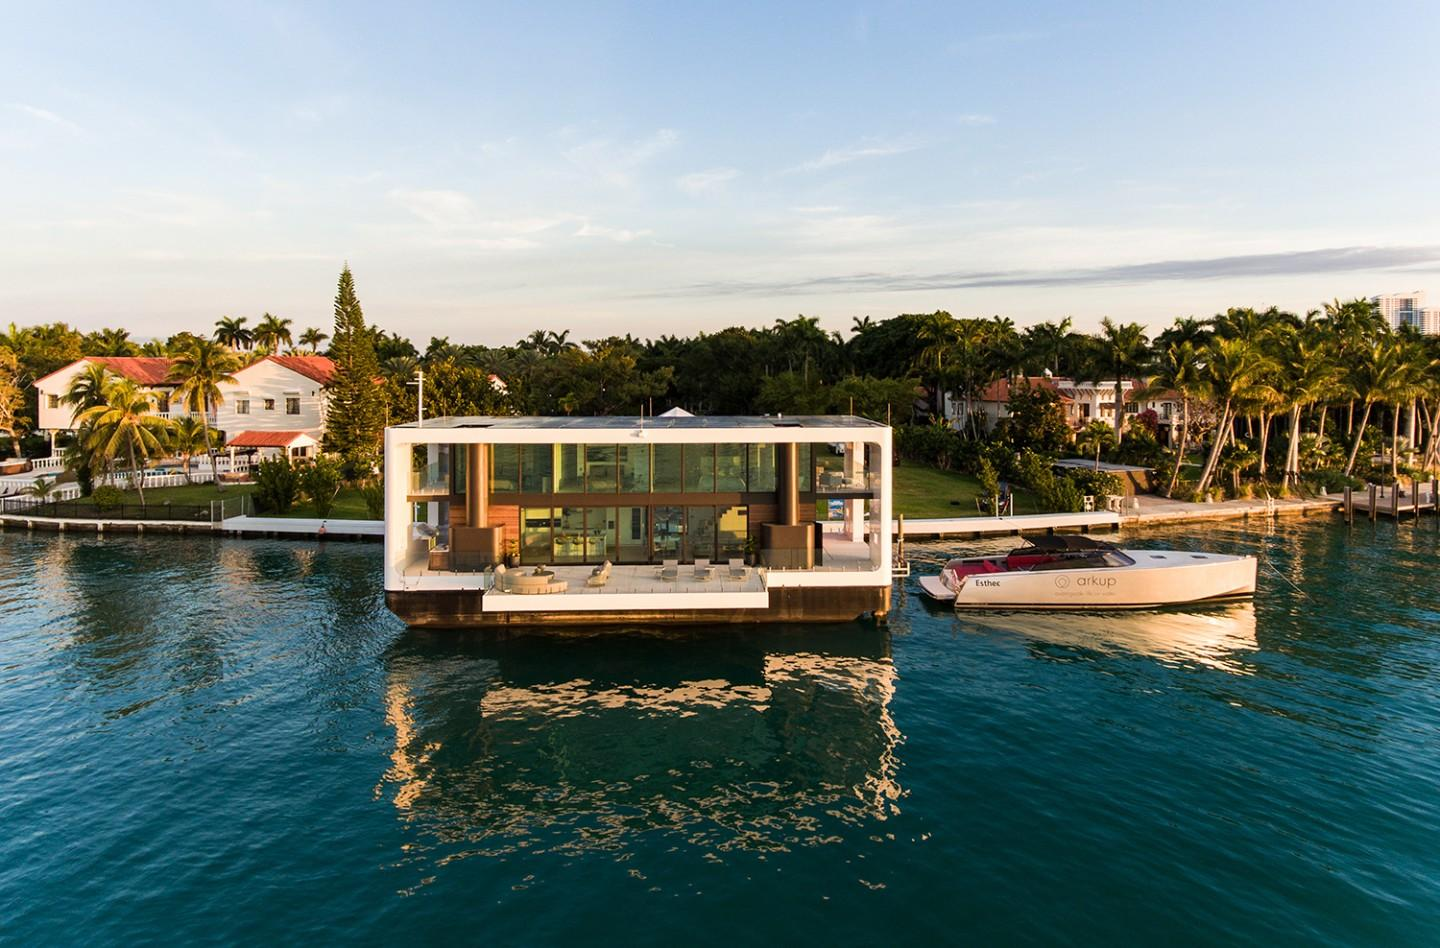 The Arkup #1 ultra-luxury two-story houseboat